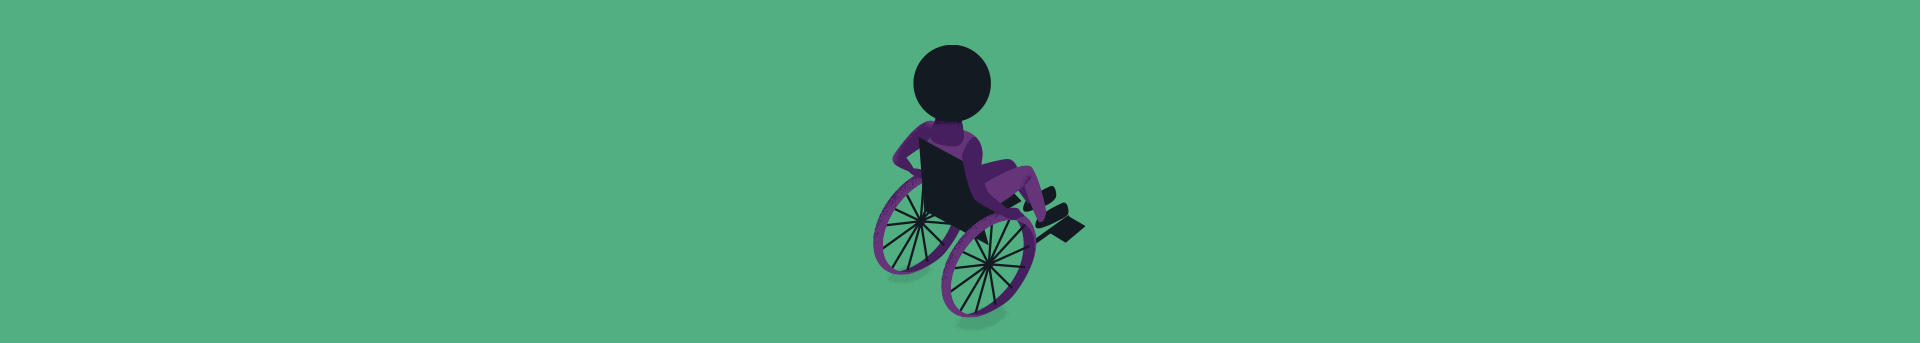 Header with person with afro in a wheelchair part of the illustration